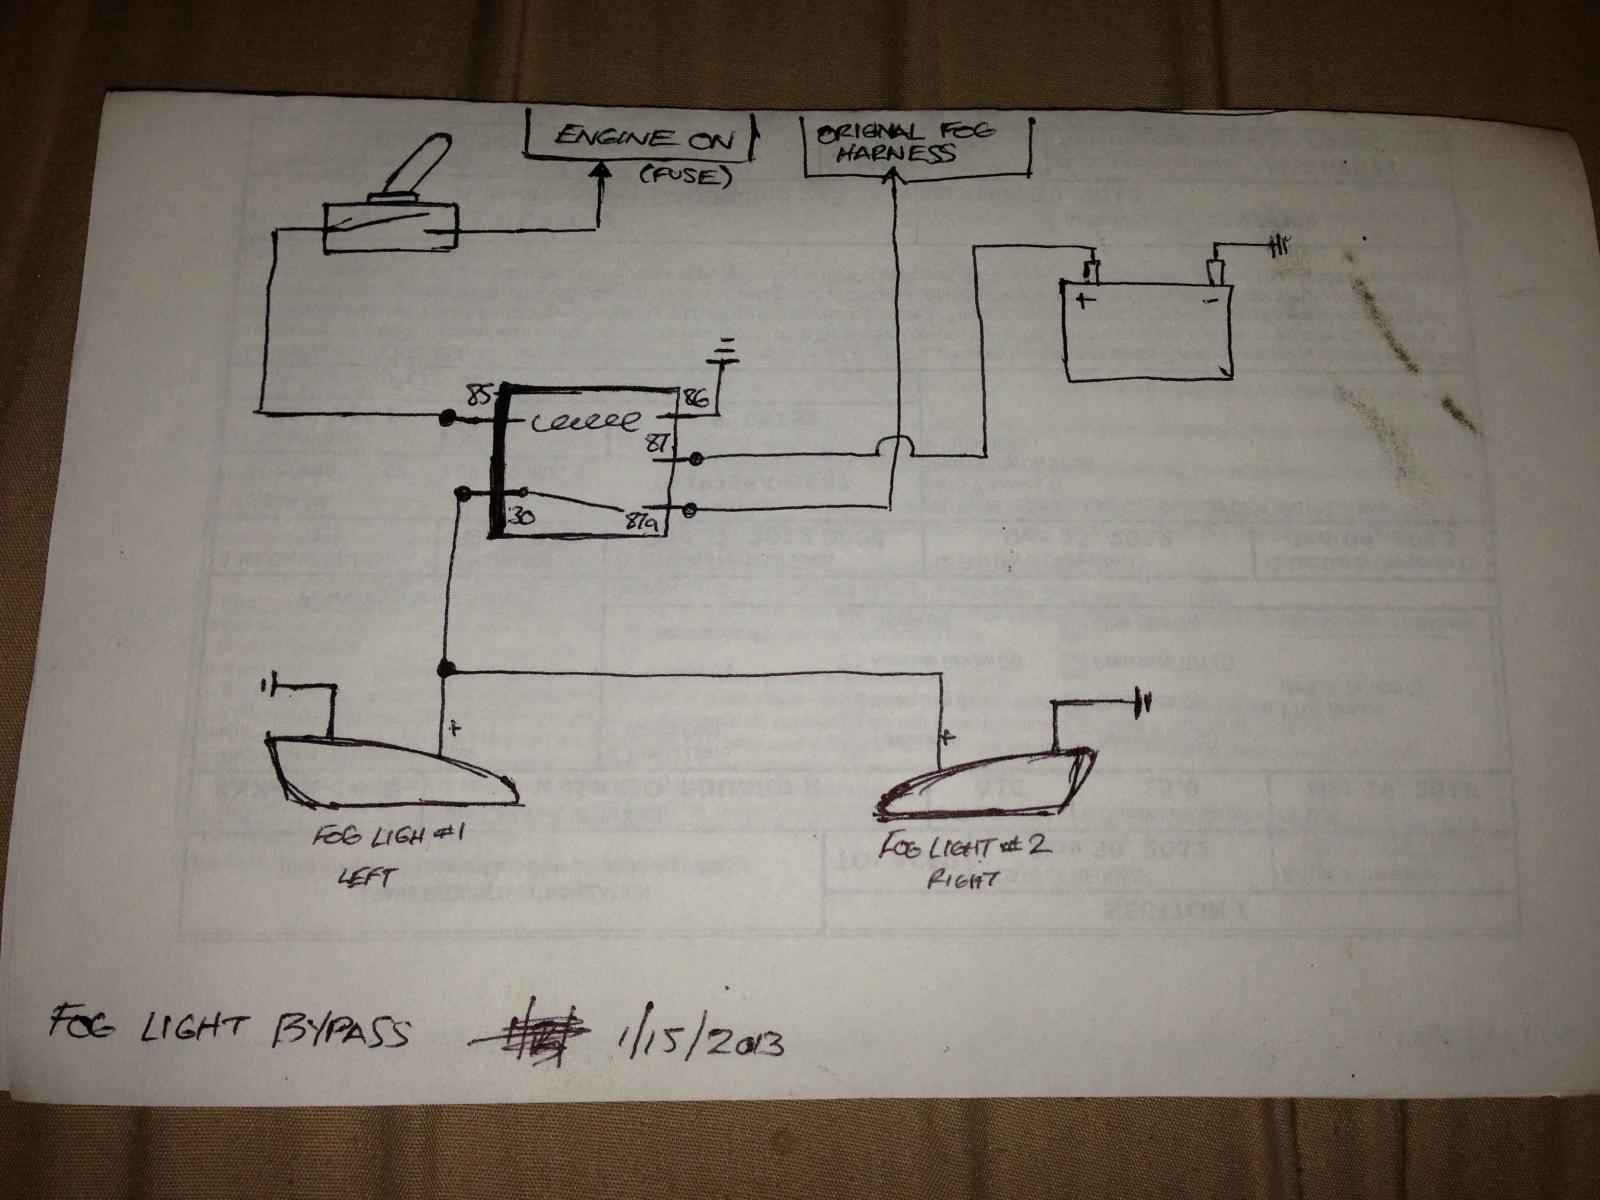 Fog Light Relay Wiring Diagram View Diagram Auto Car Wiring Diagram ...